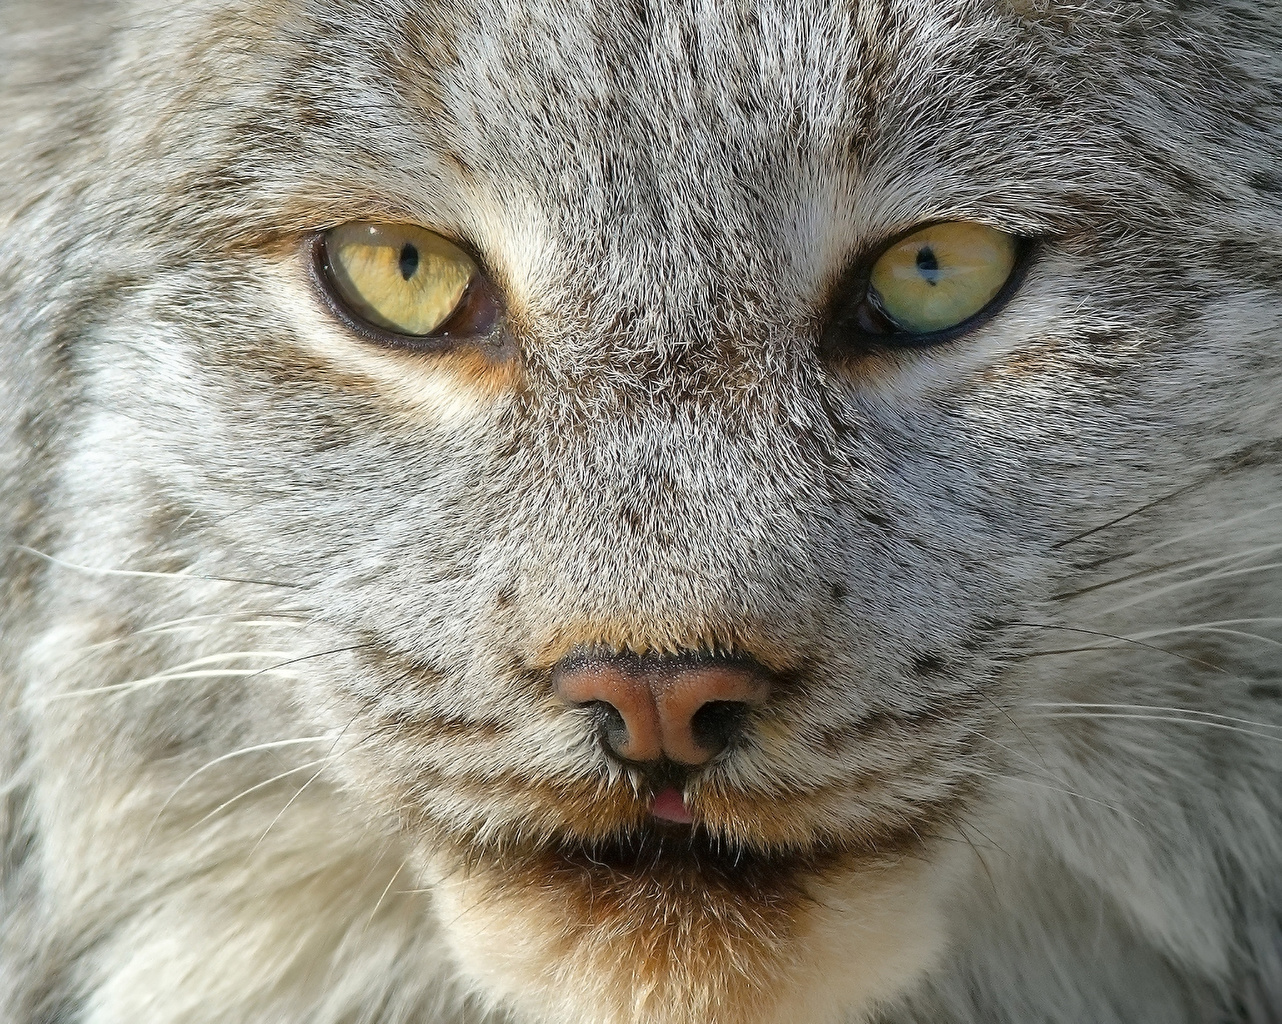 Pictures Lynx Eyes Nose Snout Staring Animals lynxes Glance animal